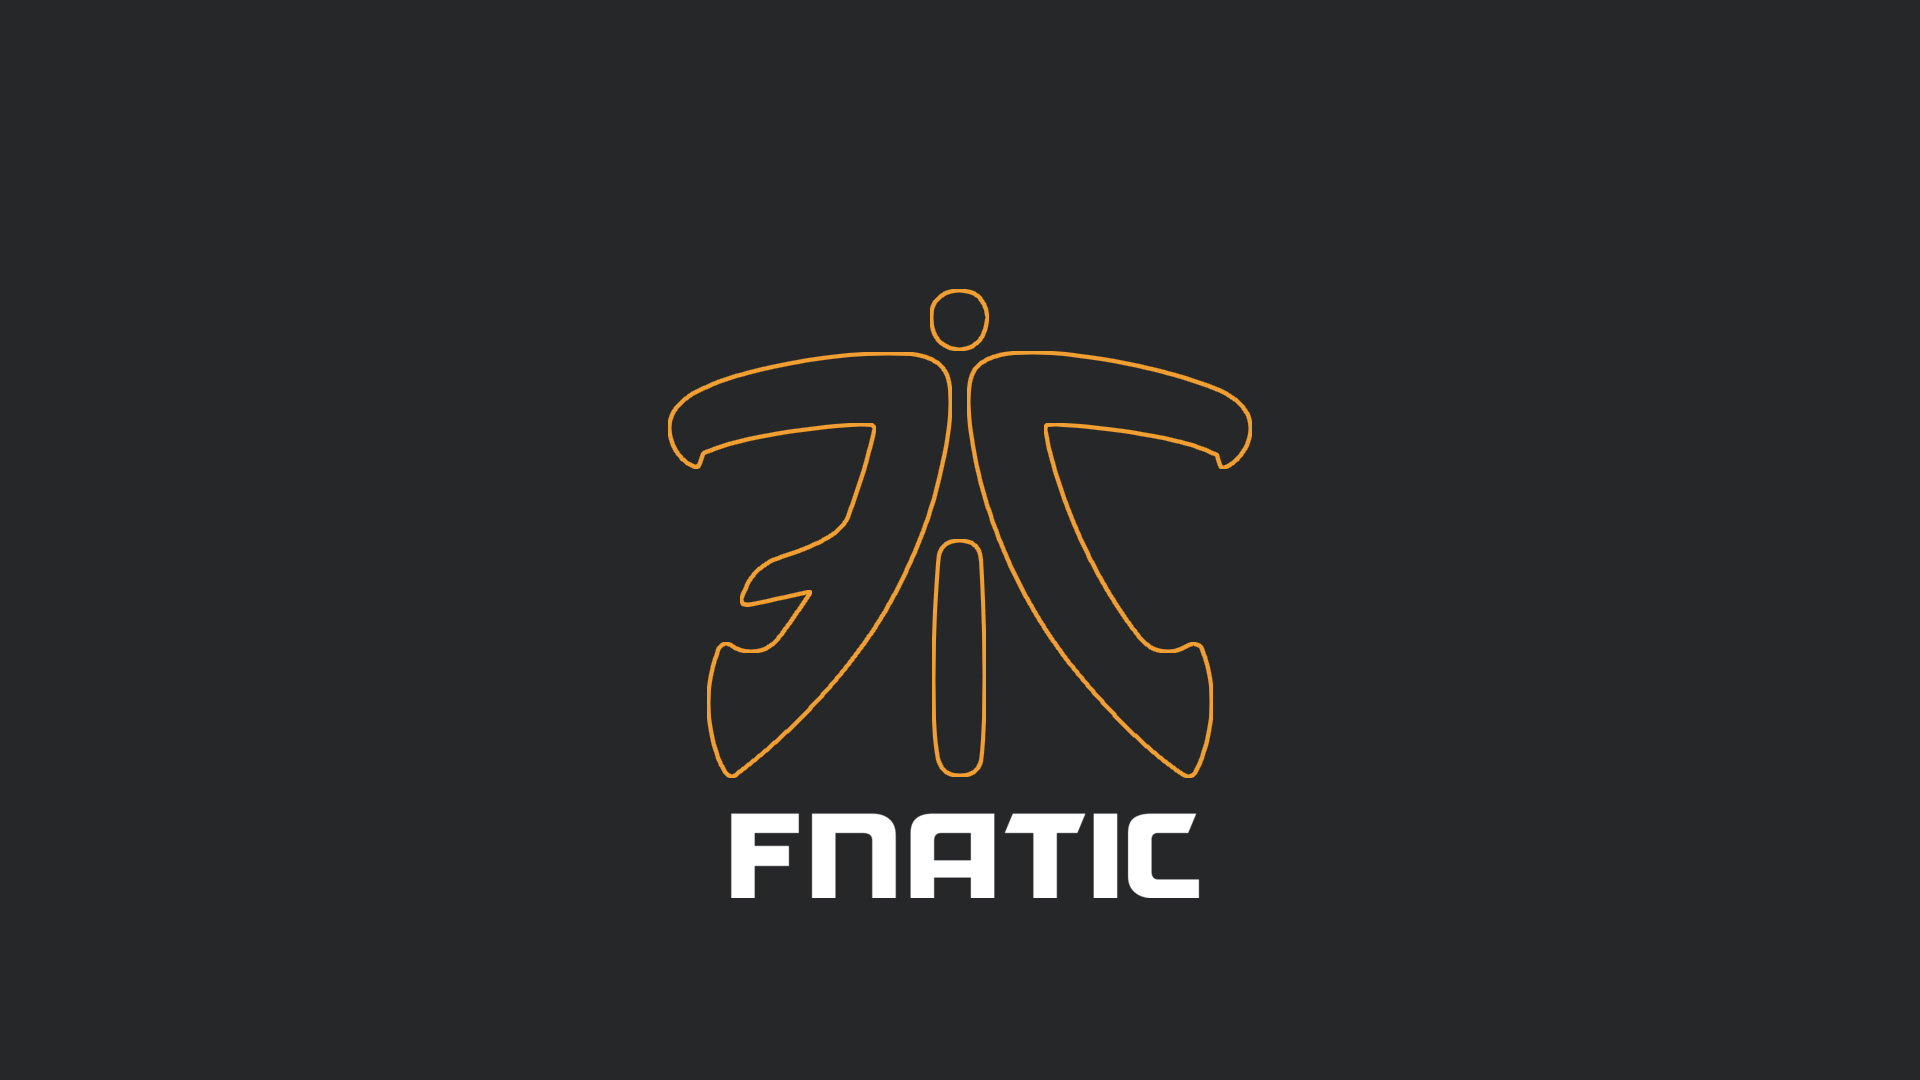 Hd Knife Wallpaper Fnatic Outline Cs Go Wallpapers And Backgrounds